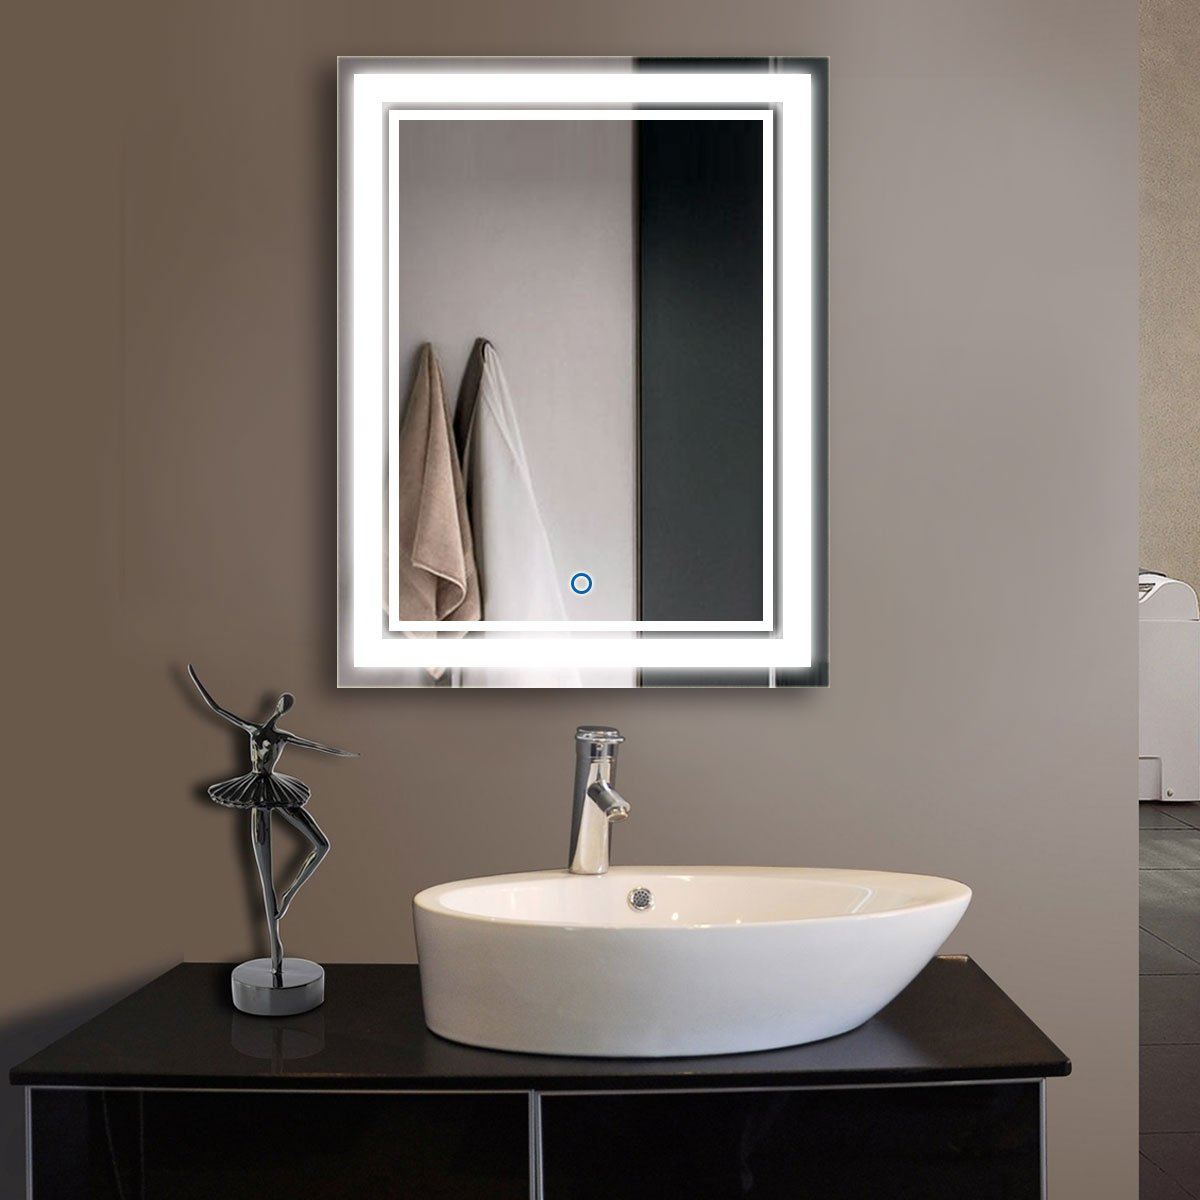 36 X 60 Mirror Part - 15: Amazon.com: 28 X 36 In Vertical LED Bathroom Silvered Mirror With Touch  Button ?C-CK160-I?: Home U0026 Kitchen